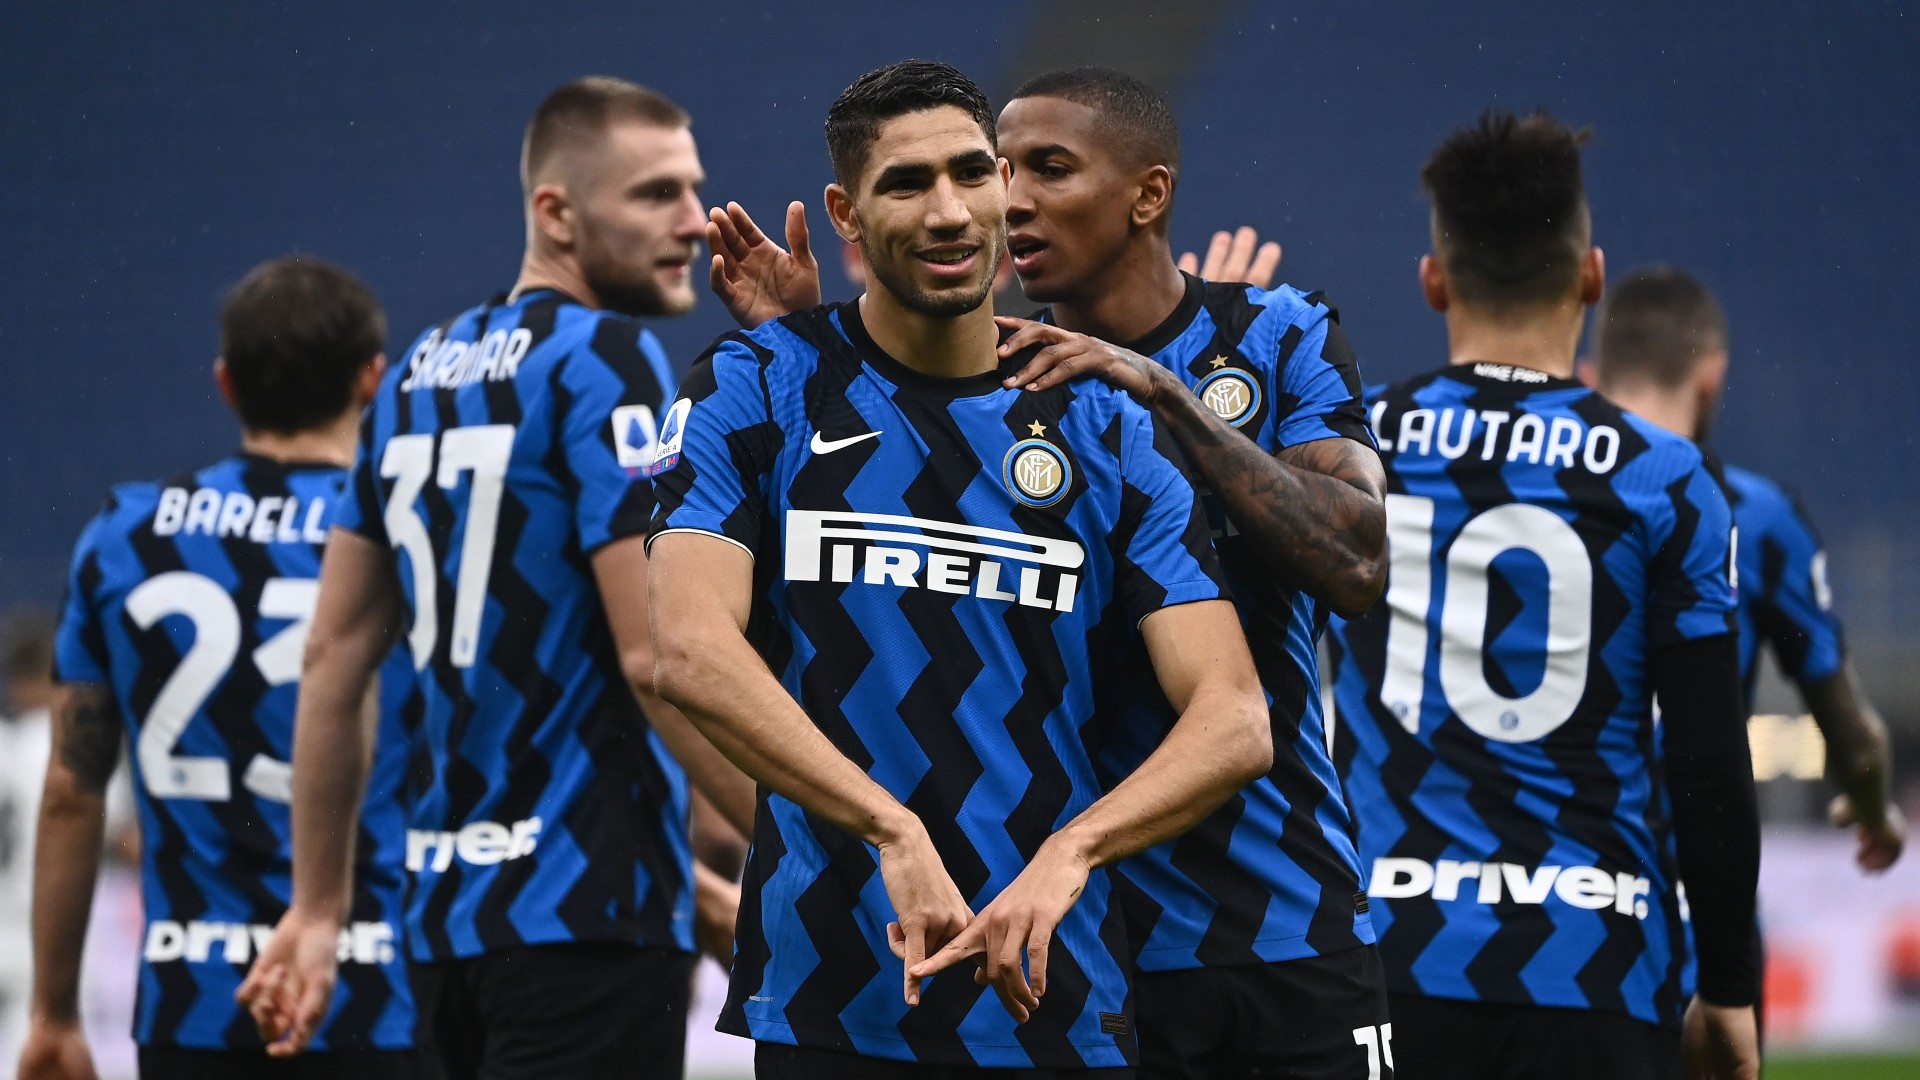 Inter Milan wing-back Hakimi matches Maicon's scoring record with Roma goal